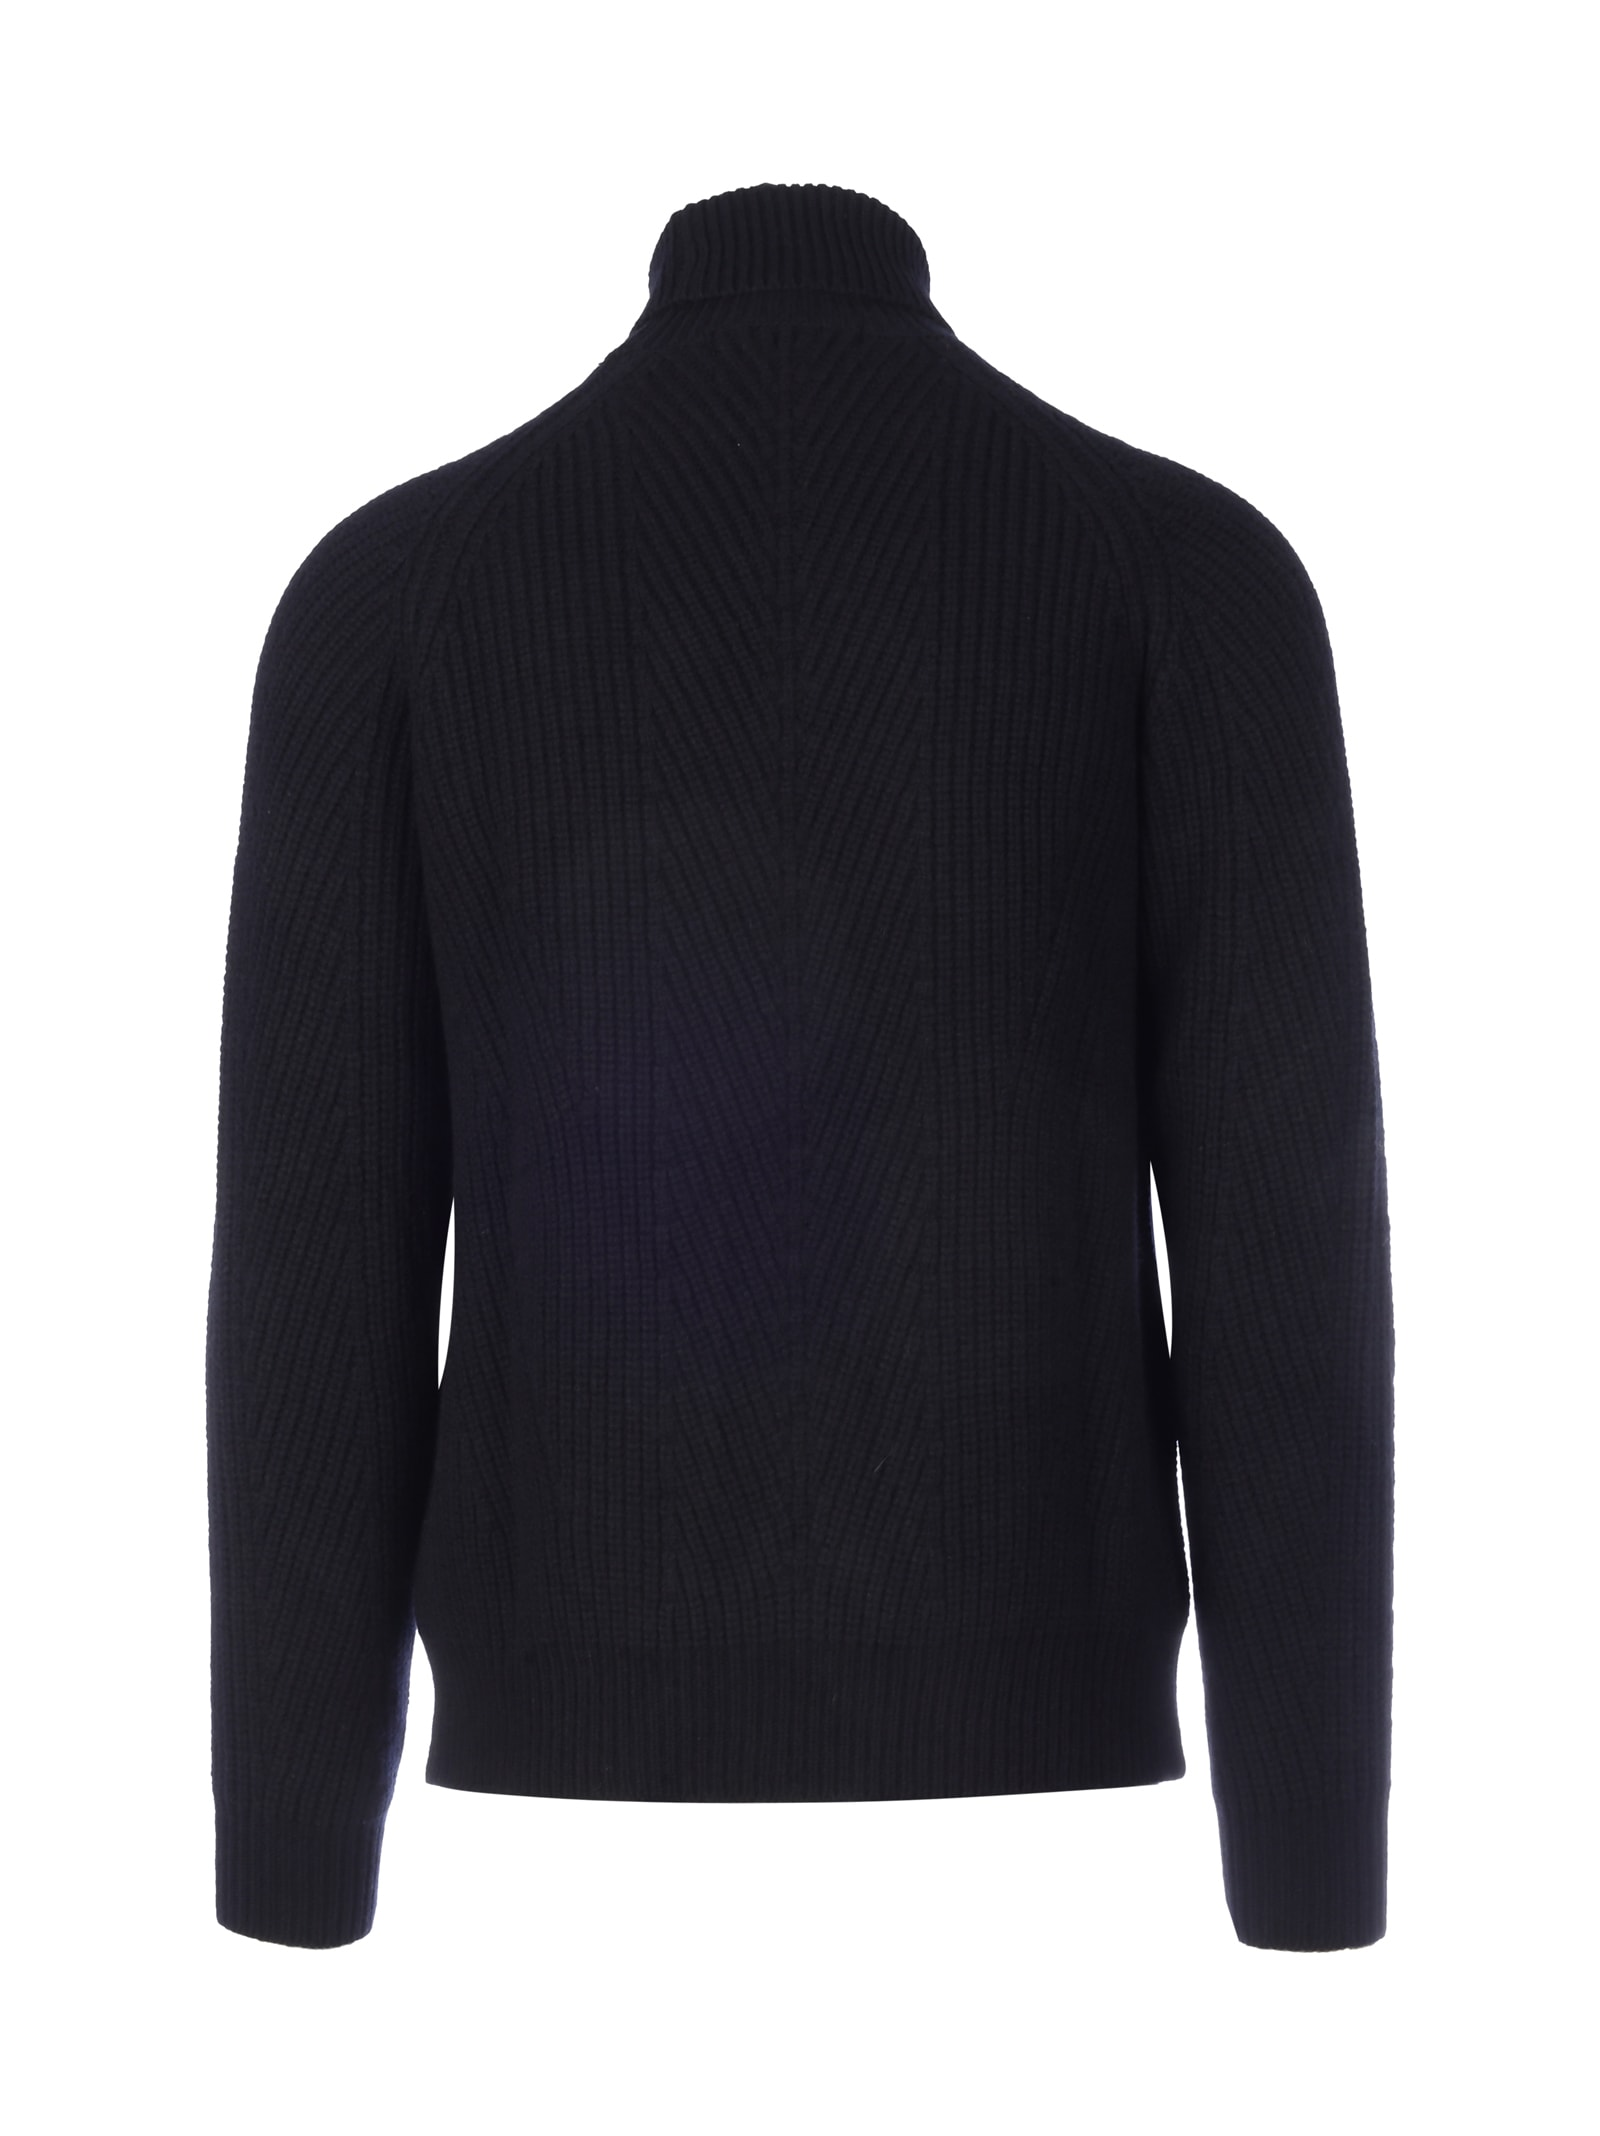 Buy Newest Original Vintage Style Turtleneck - Top Quality